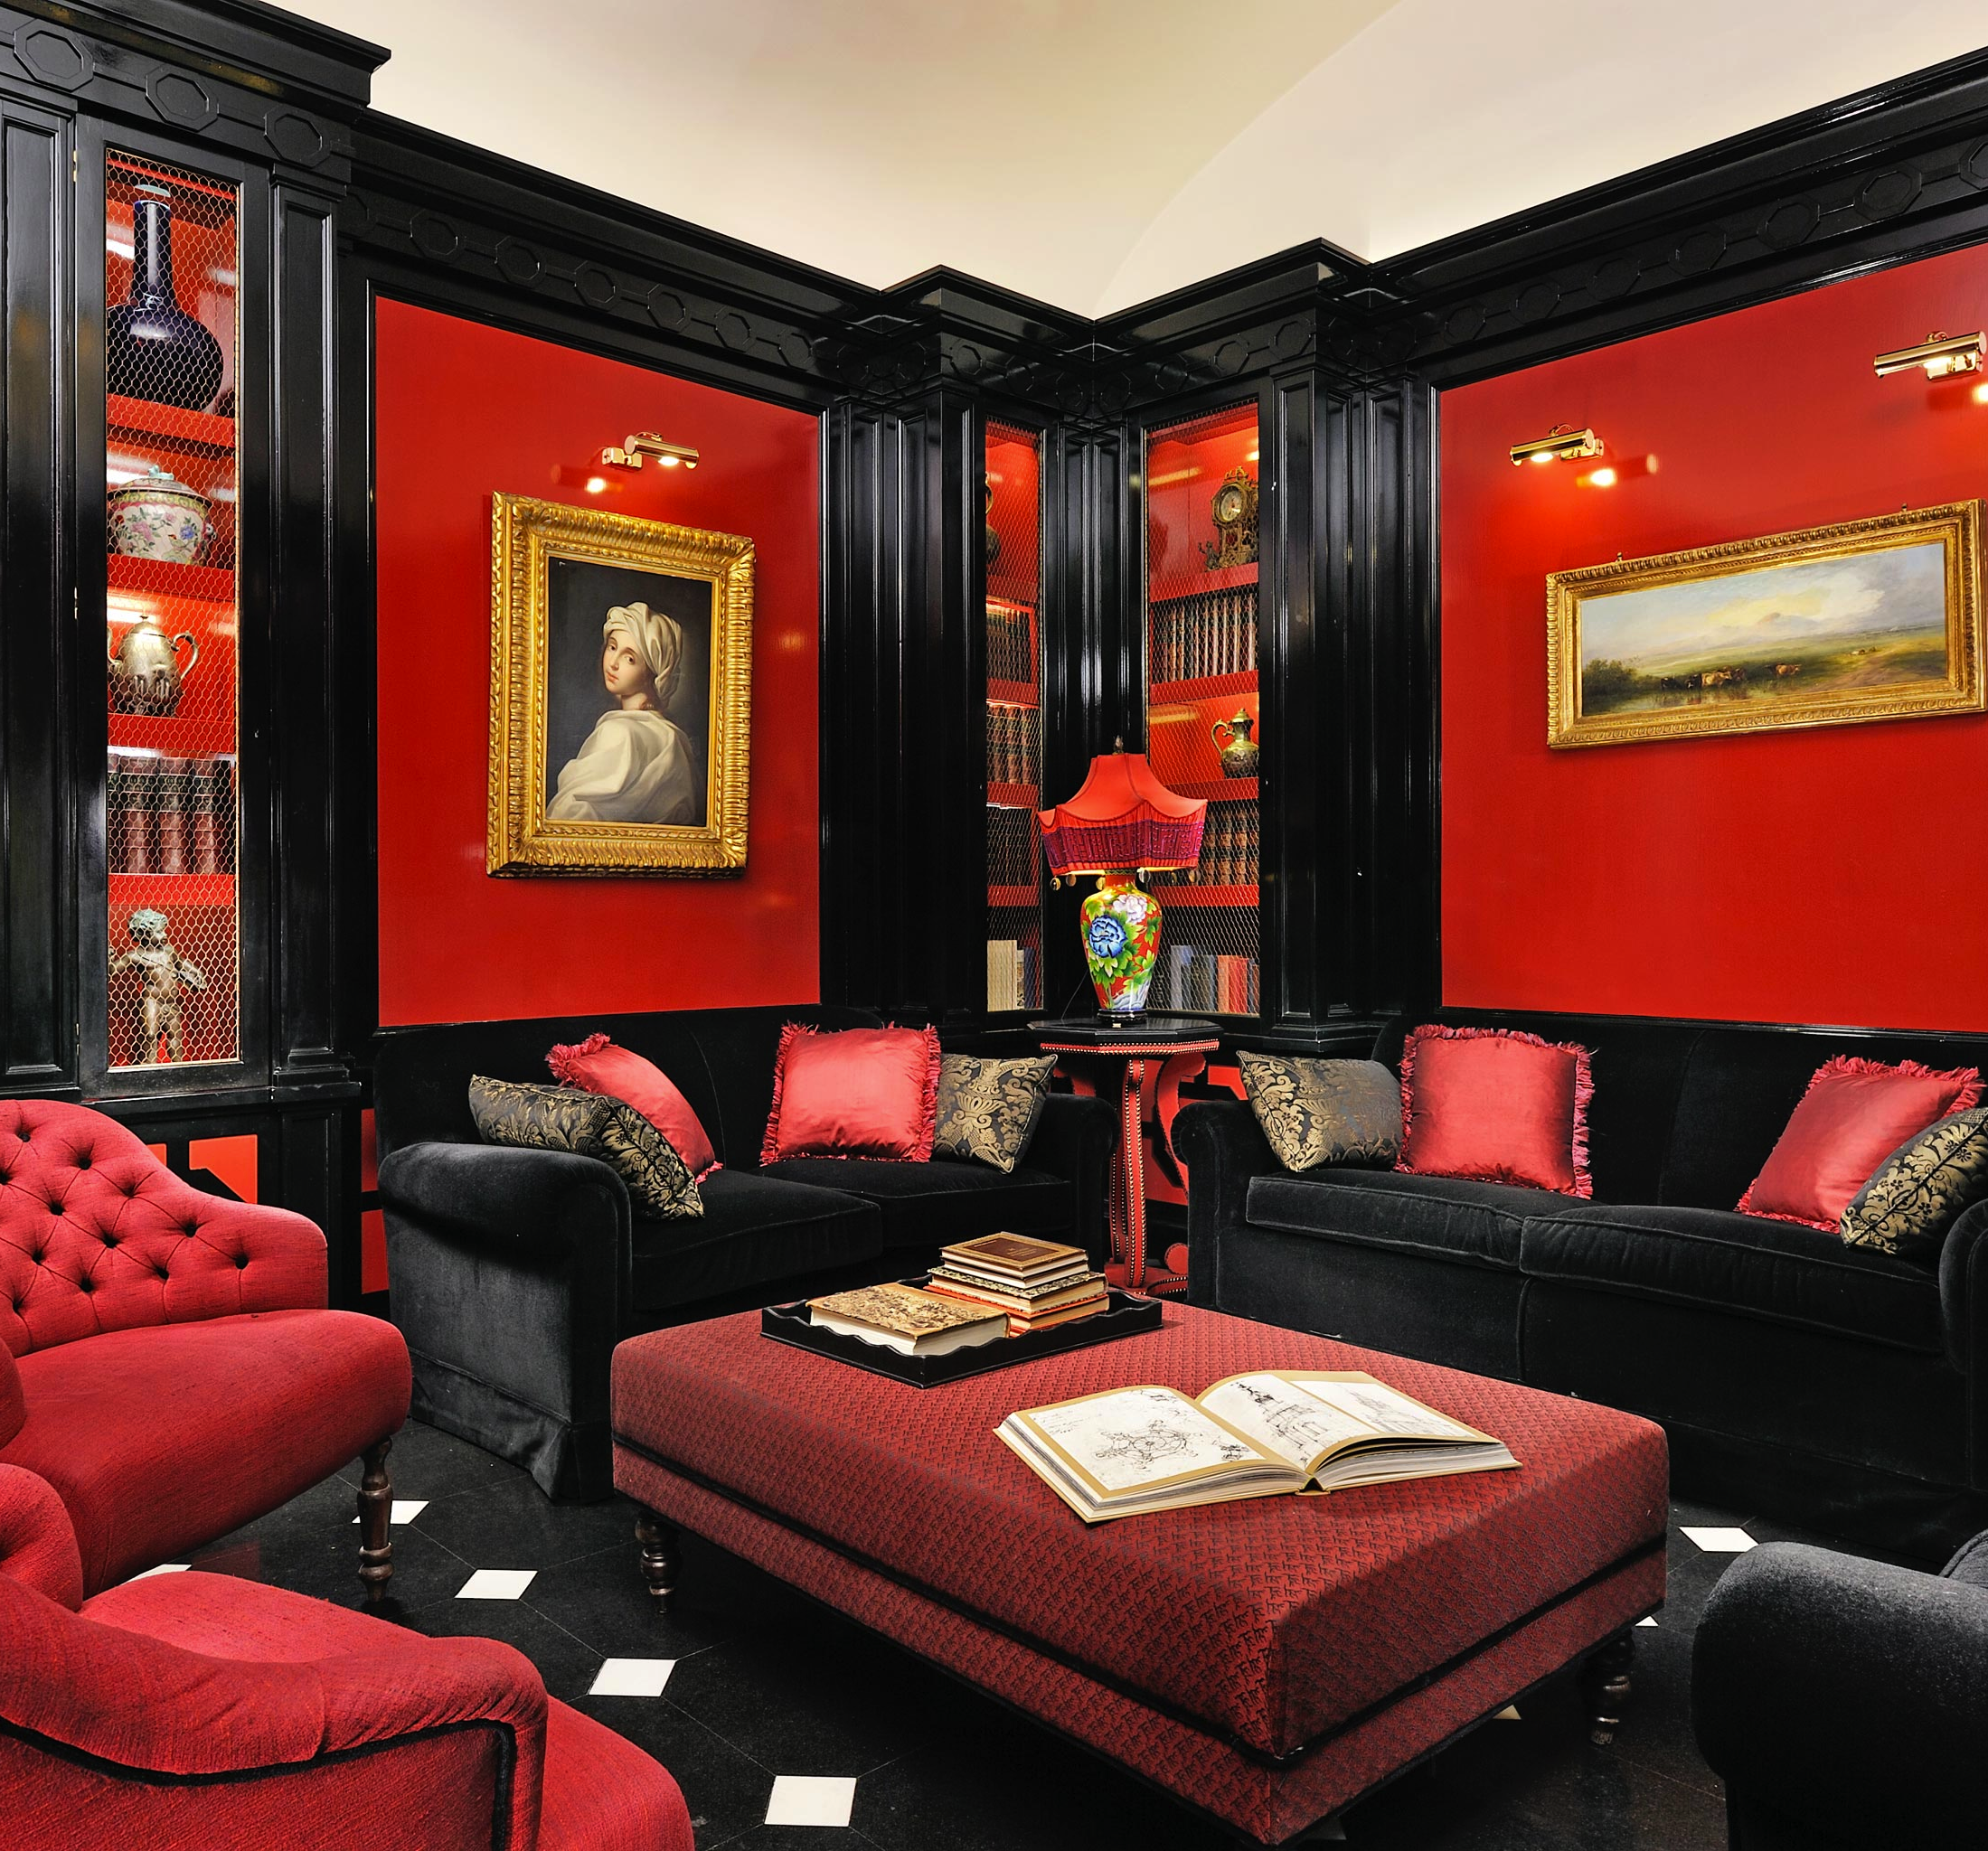 Charming Red And Gold Bedroom Ideas Part - 5: Lounge In Style: Rome Love The Red